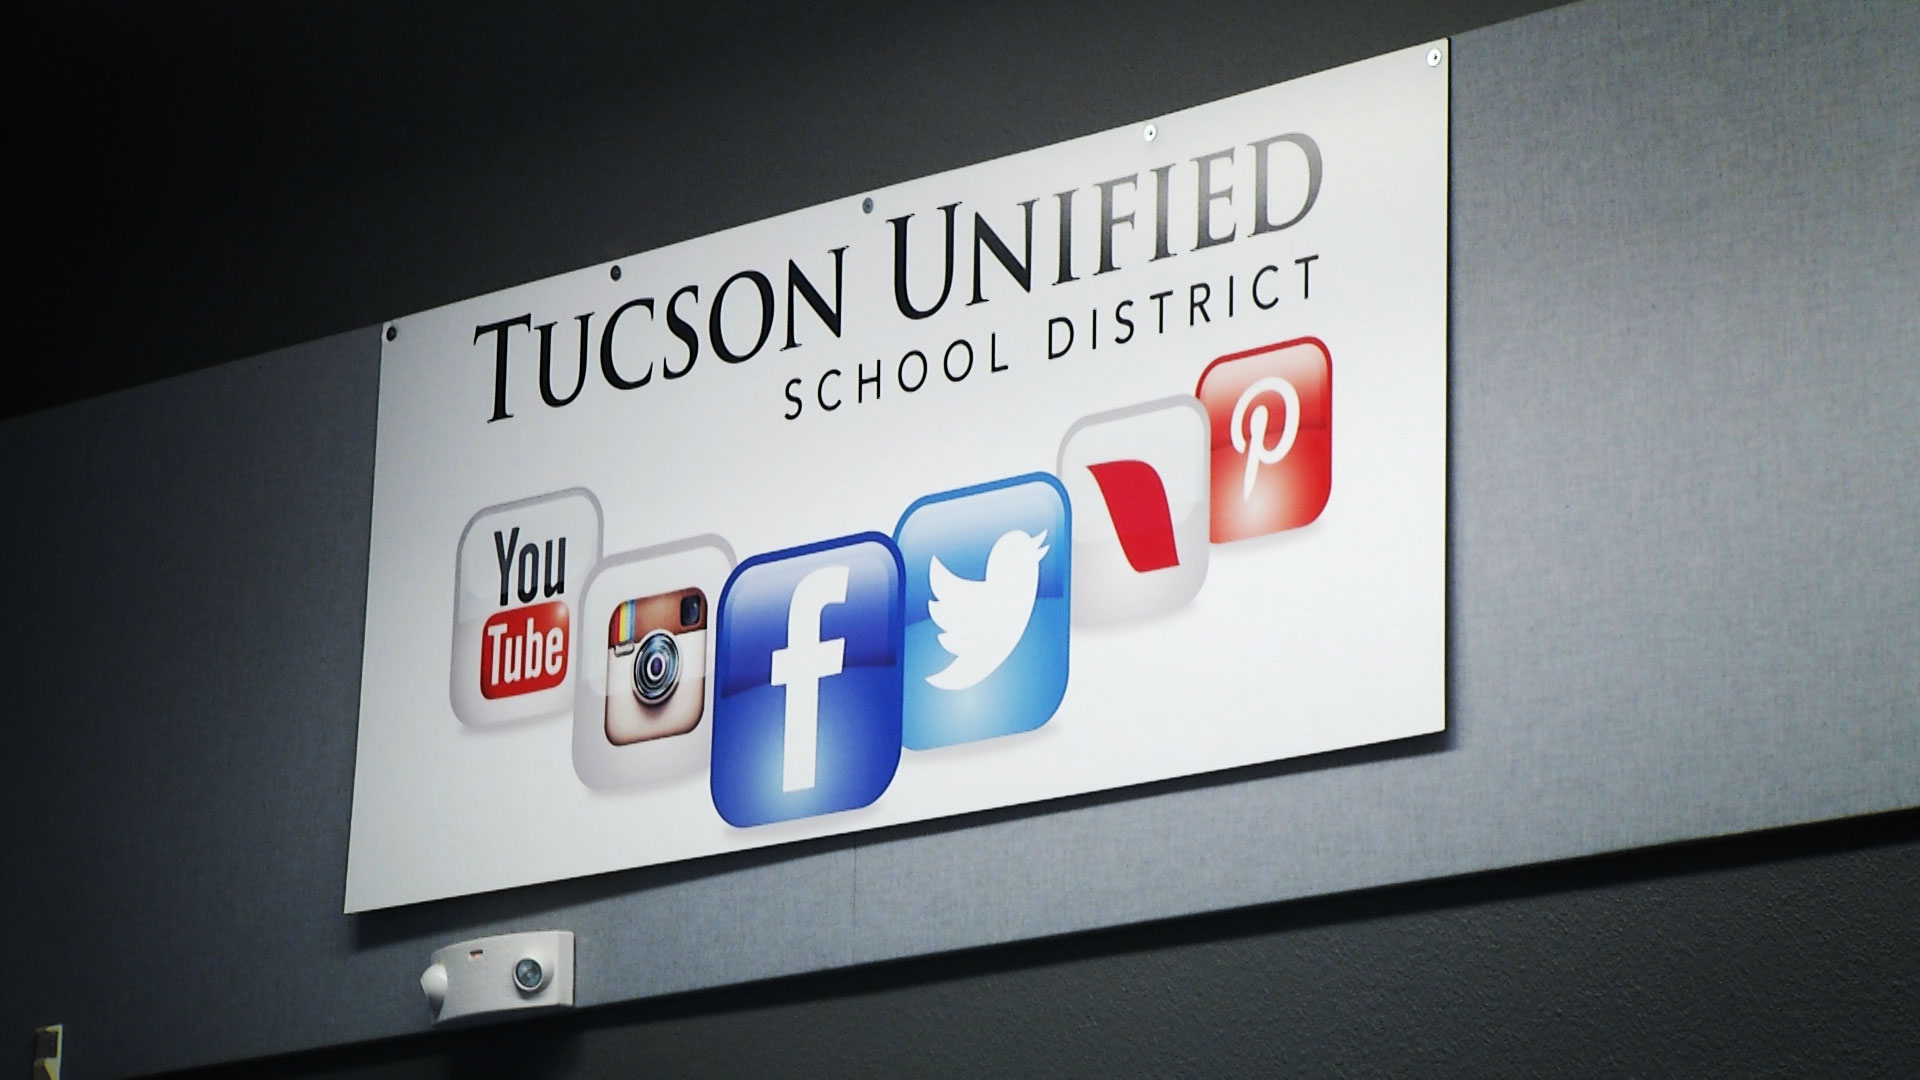 A banner for the Tucson Unified School District hangs in the school board's meeting room at the Duffy Community Center.